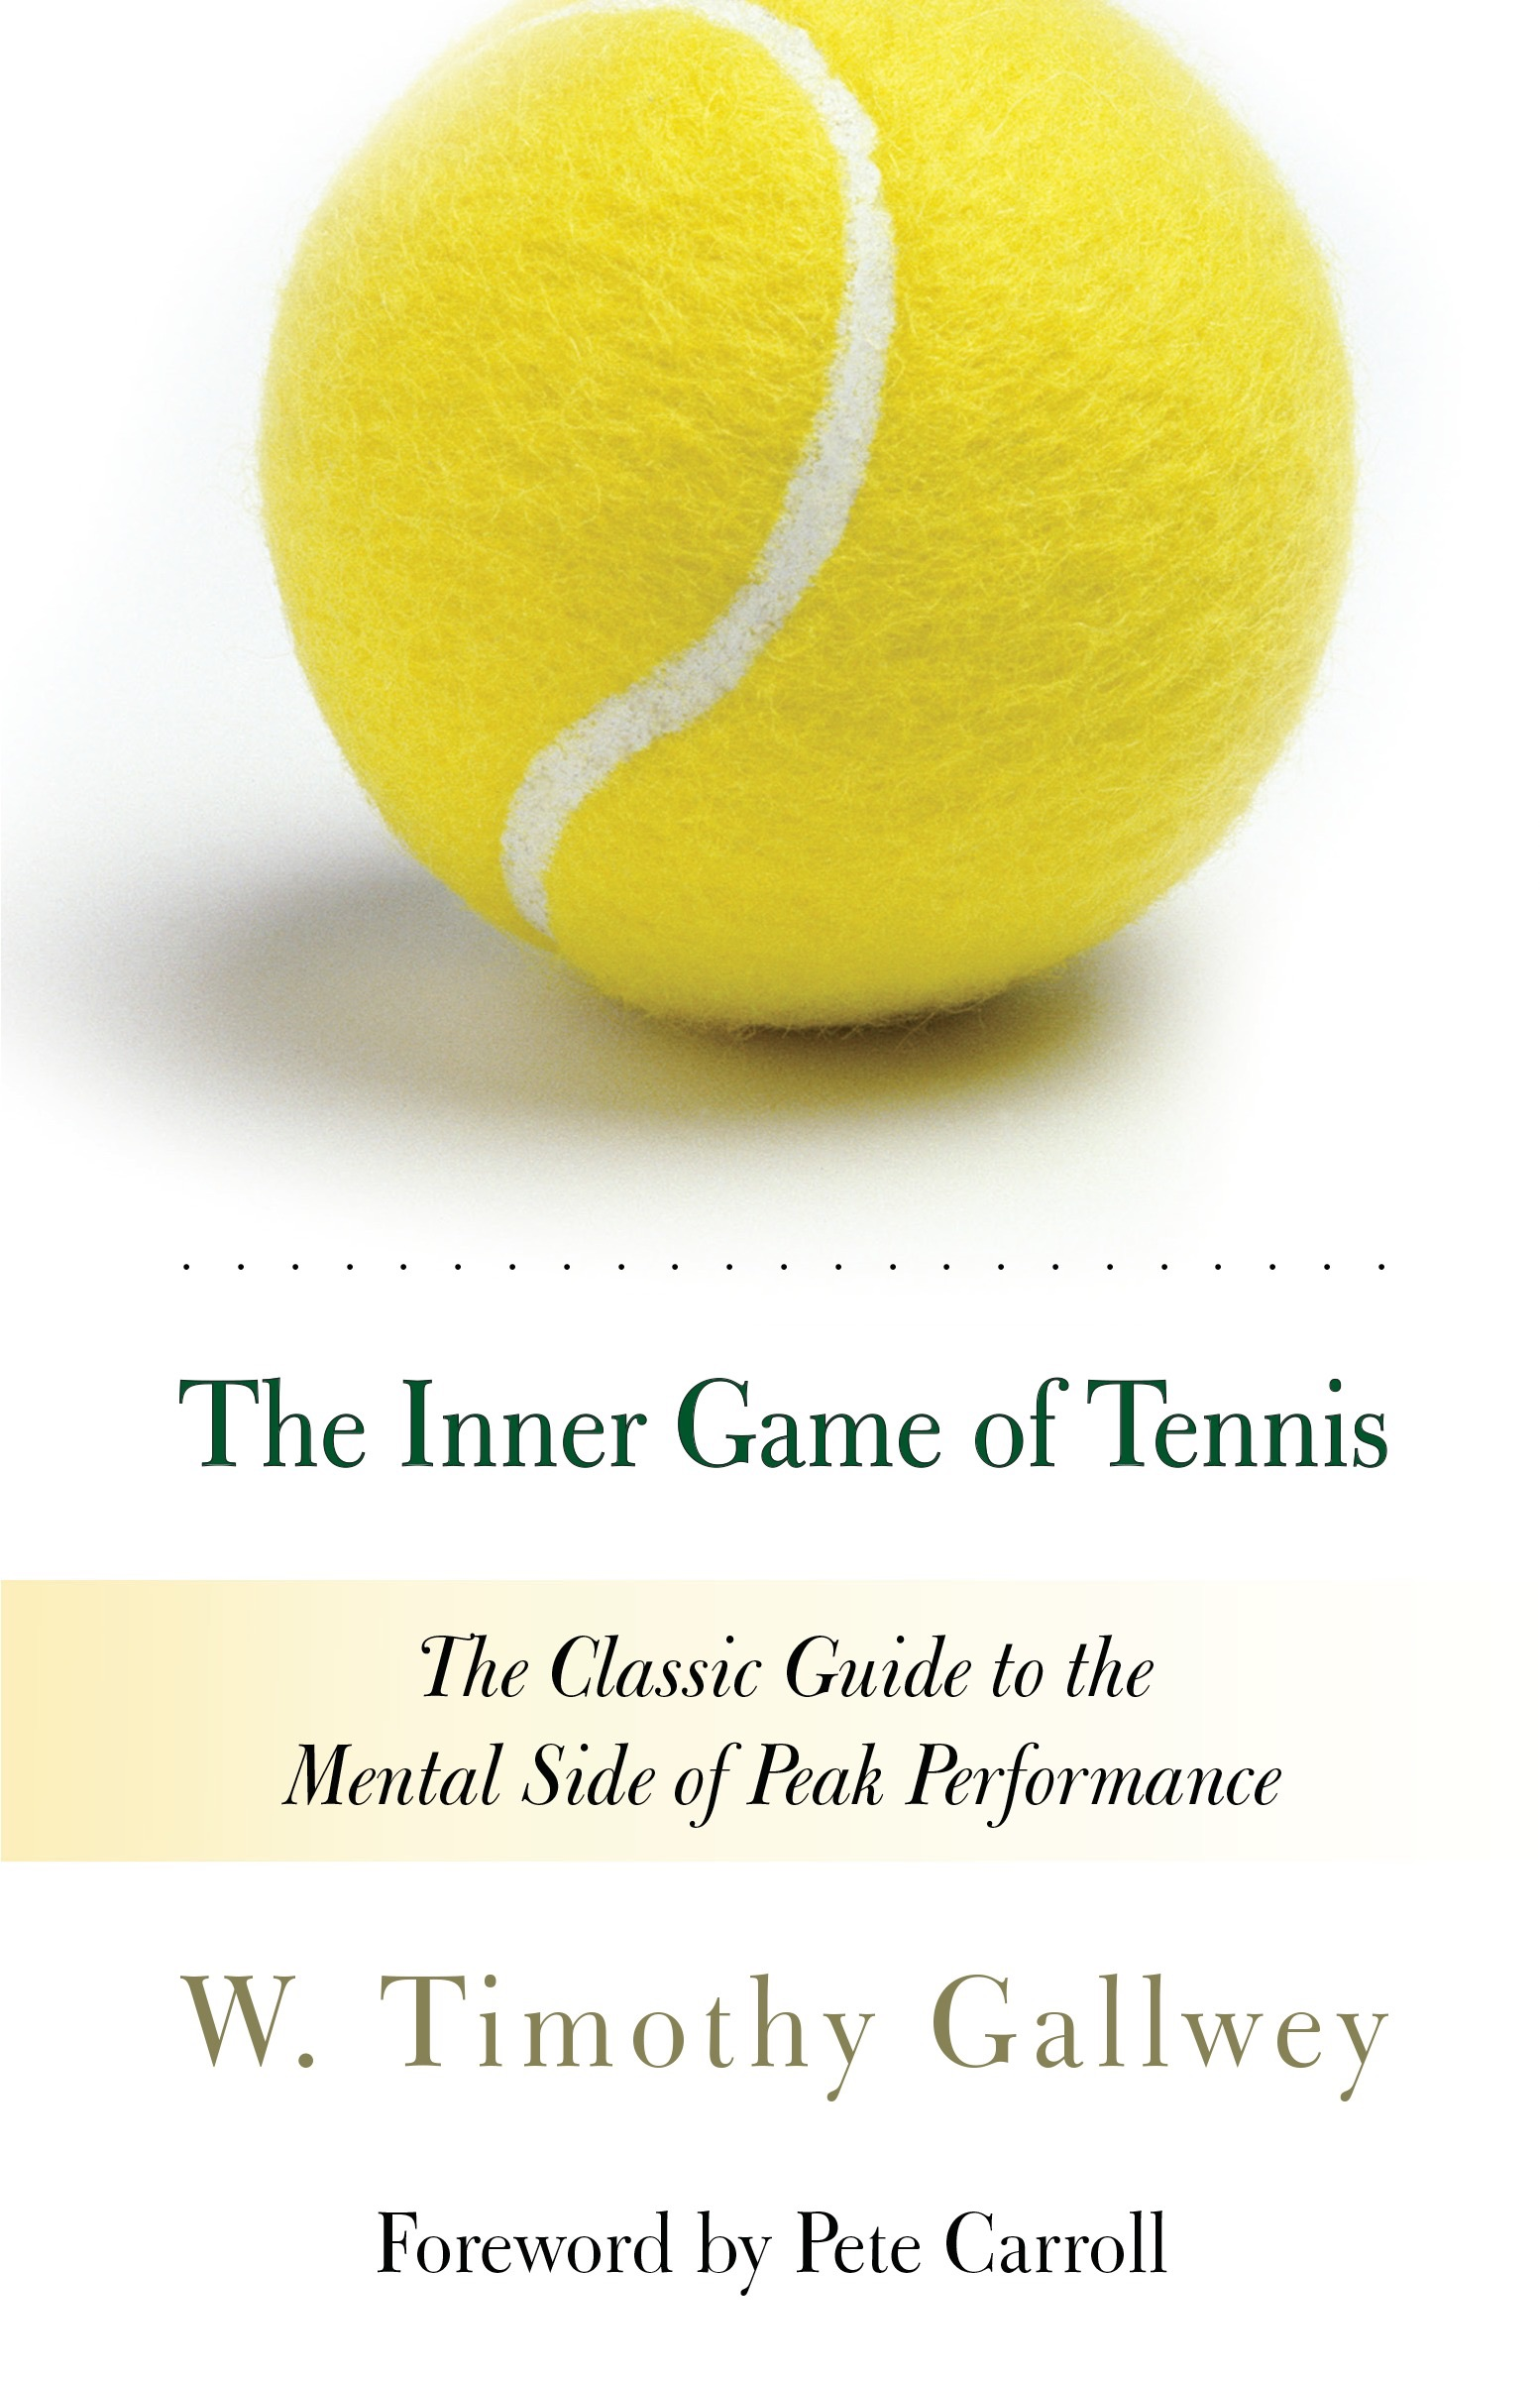 Book Cover of The Inner Game of Tennis